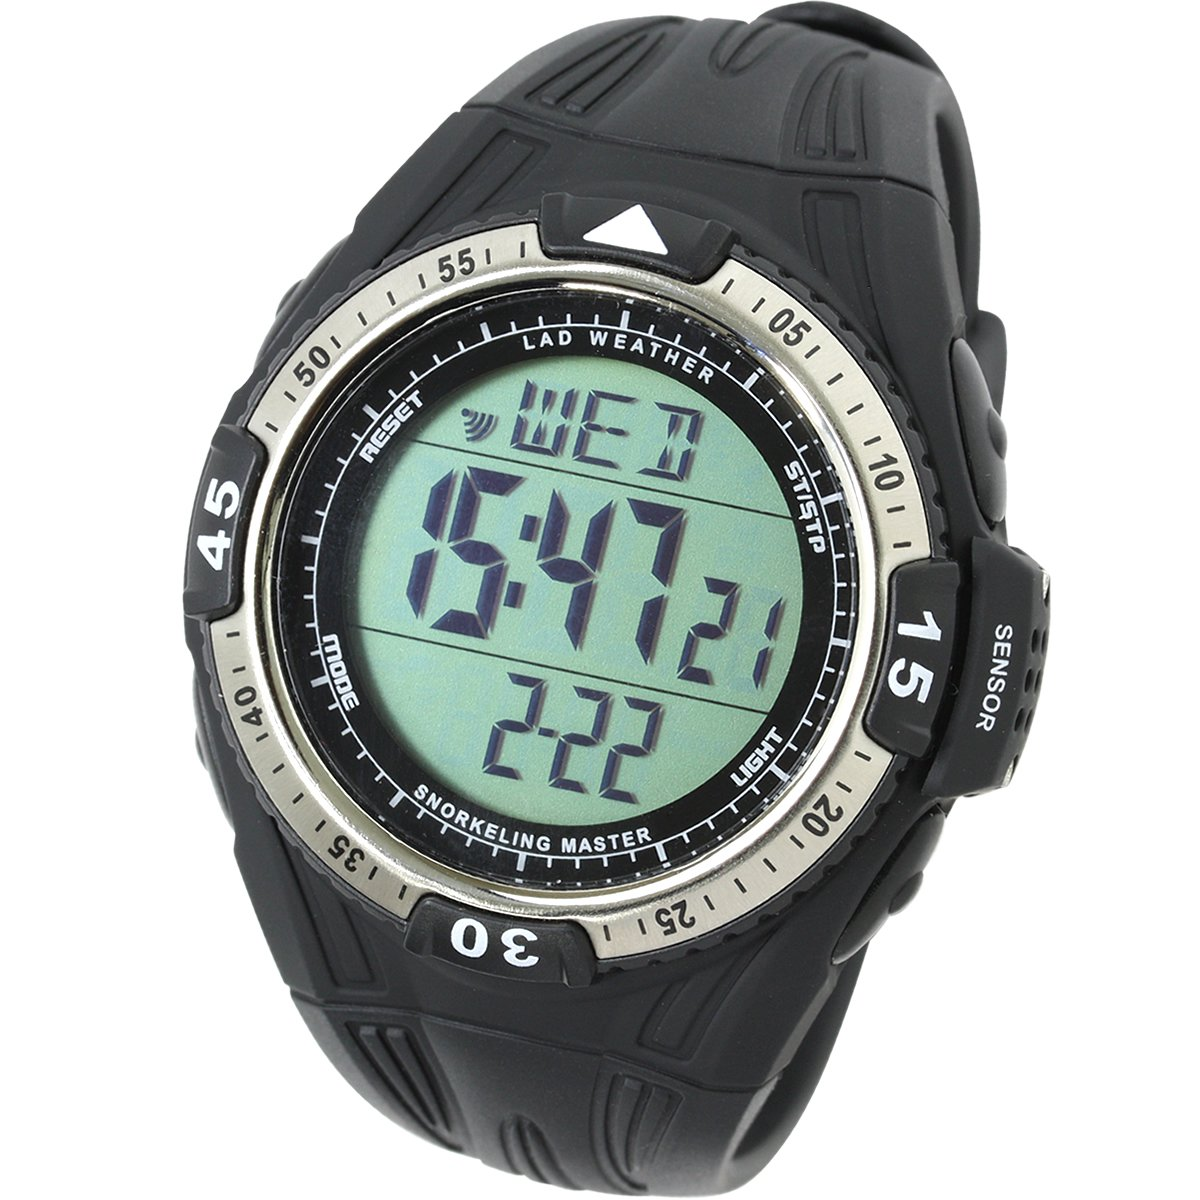 Lad Weather Water Depth Temperature Measure Watch Snorkeling Sport Diving Watches by LAD WEATHER